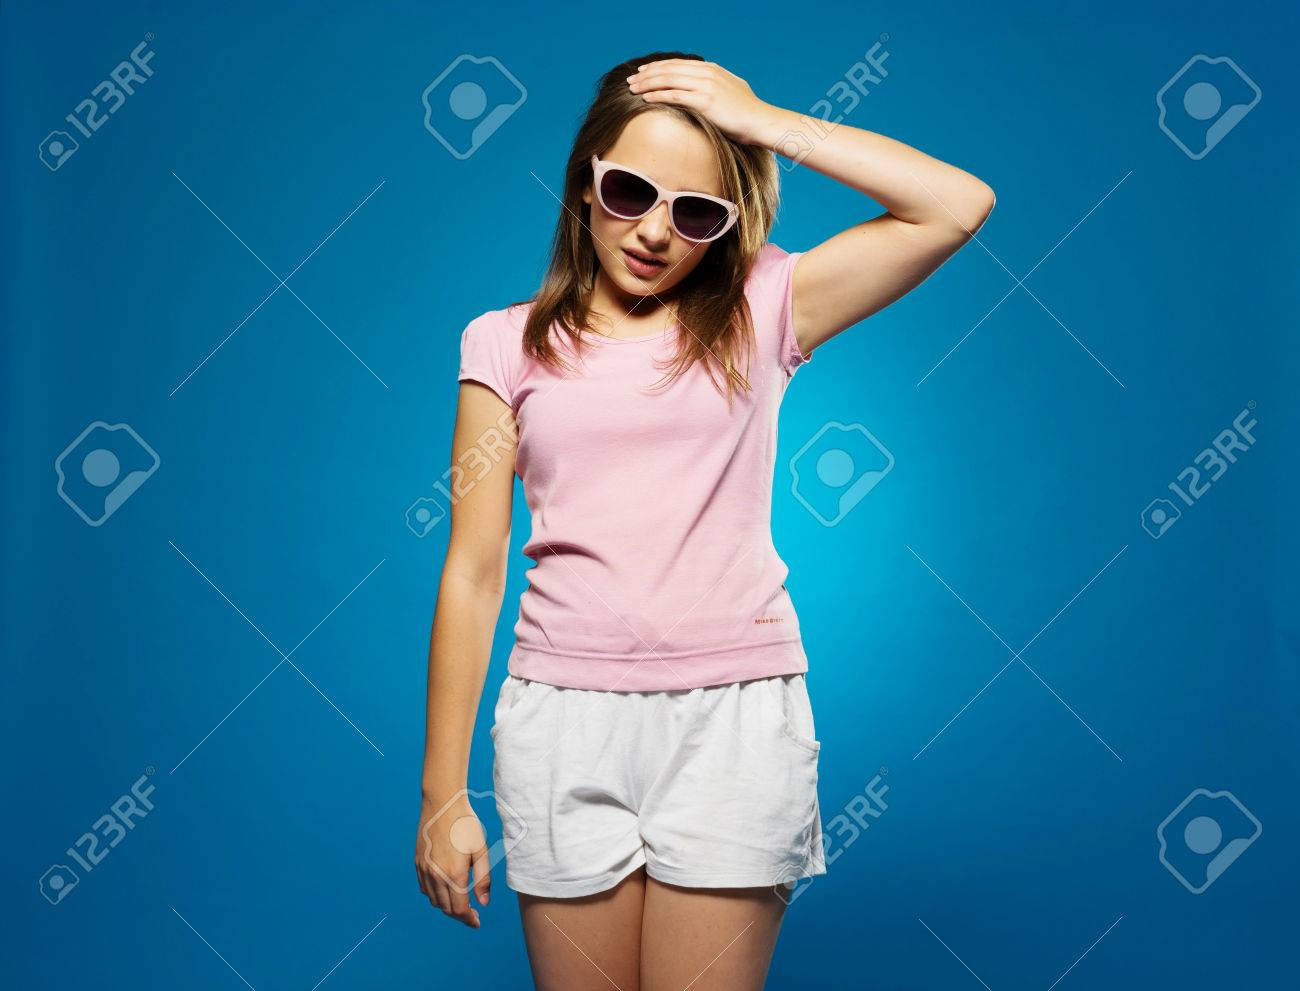 21fb25e6e32 Stock Photo - Trendy young girl in summer shorts and sunglasses with a  headache clutching her forehand with her hand and grimacing in pain